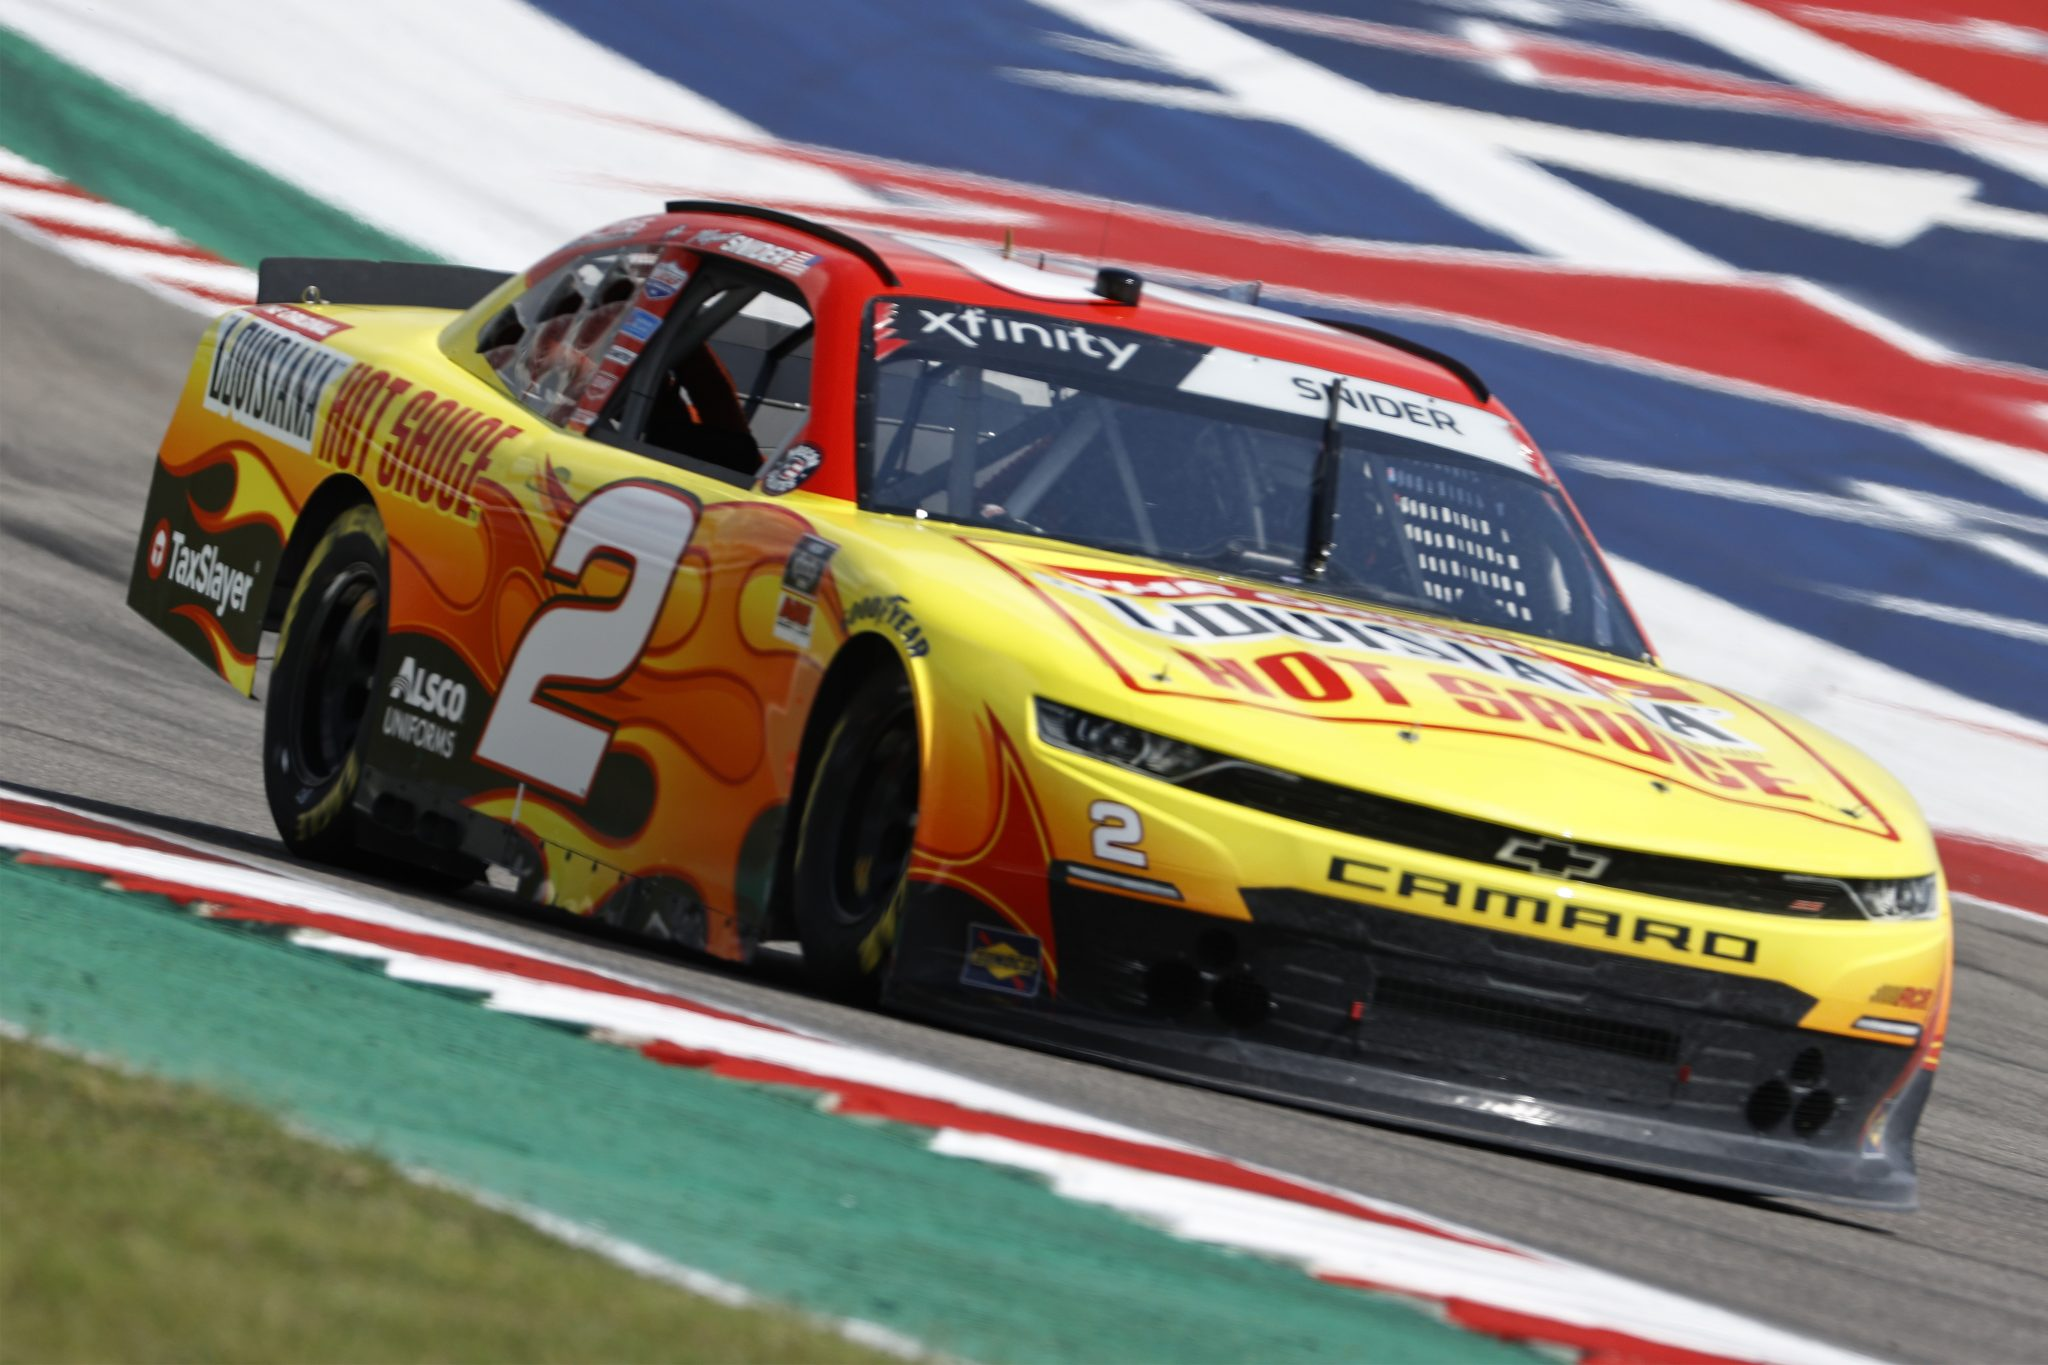 AUSTIN, TEXAS - MAY 21: Myatt Snider, driver of the #2 Louisiana Hot Sauce Chevrolet, drives during practice for the NASCAR Xfinity Series Pit Boss 250 at Circuit of The Americas on May 21, 2021 in Austin, Texas. (Photo by Chris Graythen/Getty Images) | Getty Images